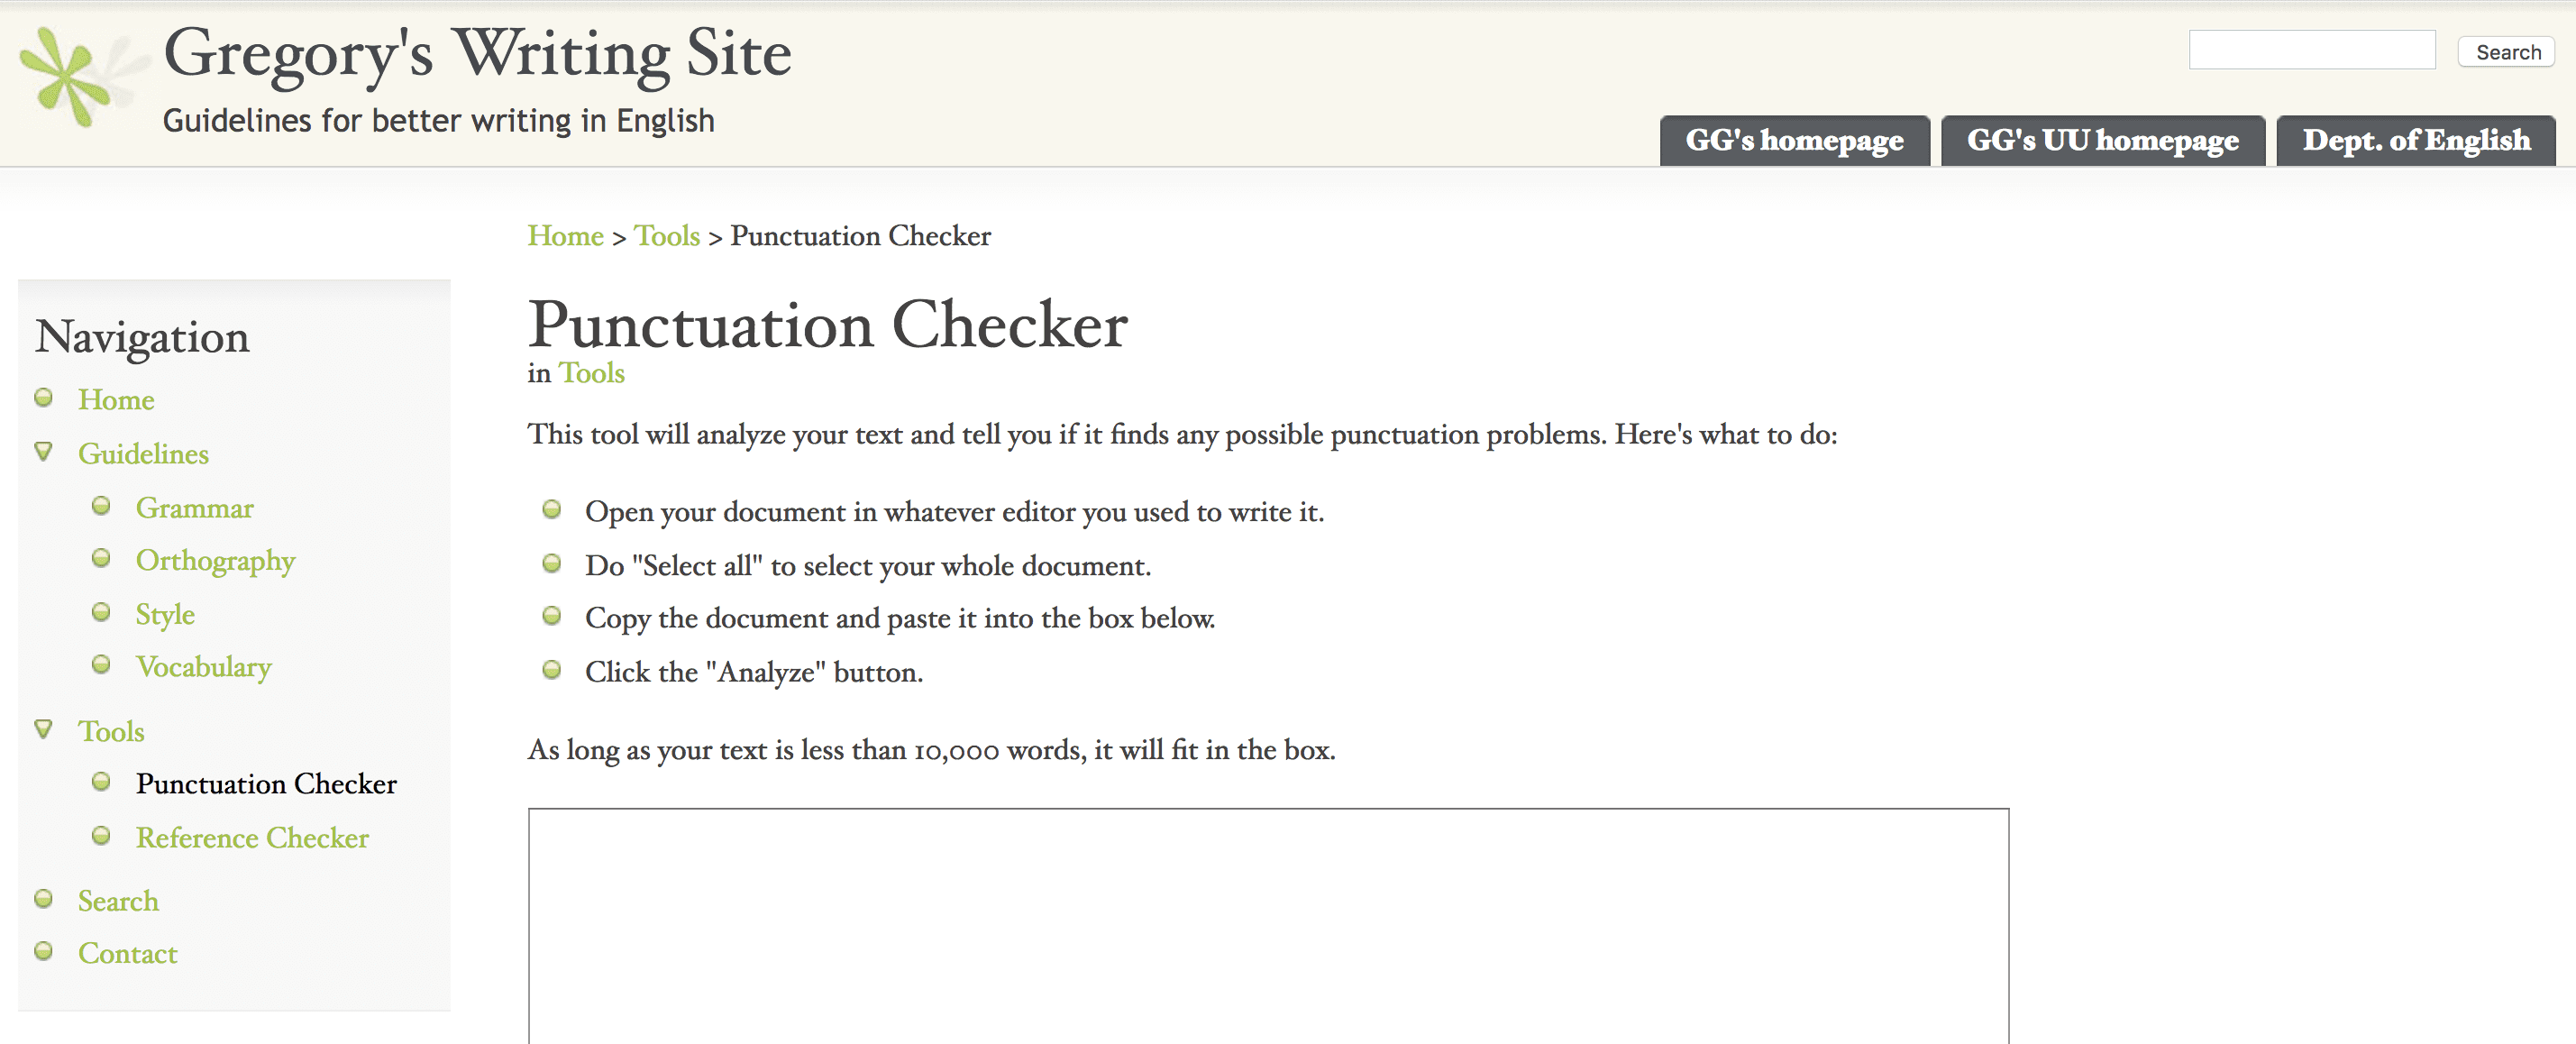 Gregory's Punctuation Checker